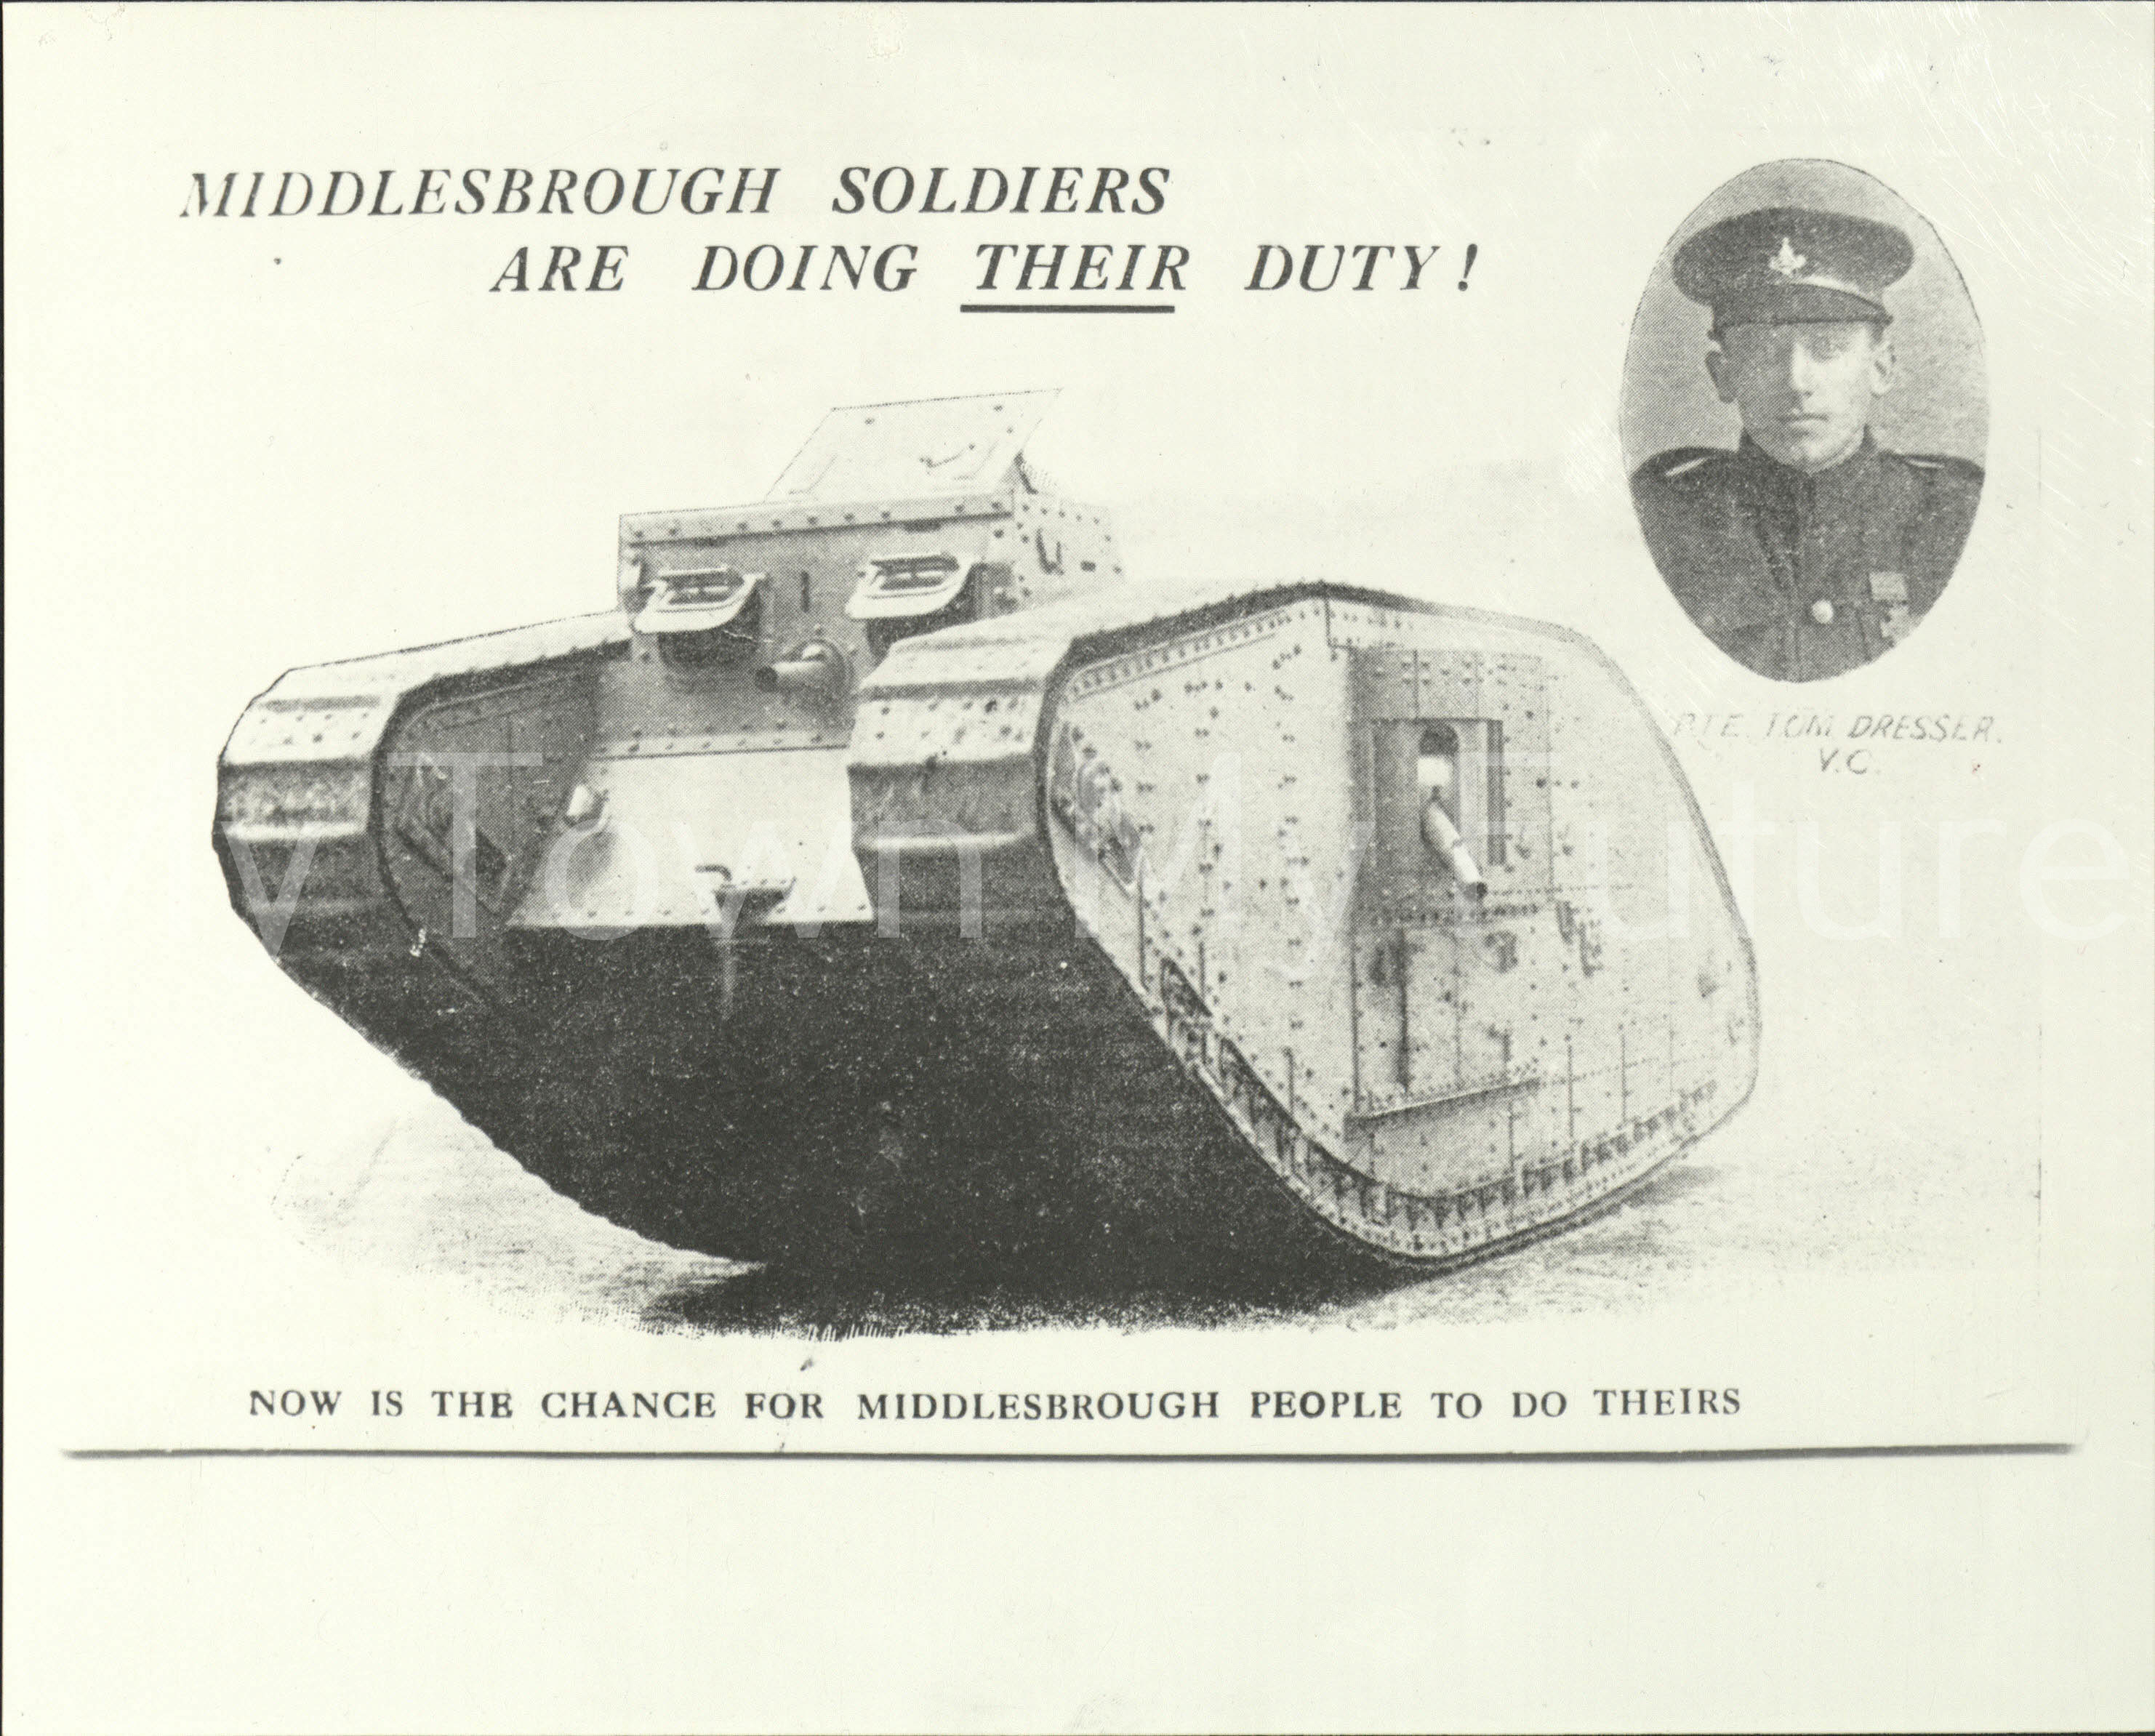 World War 1 Picture of Tom Dresser and a Tank.